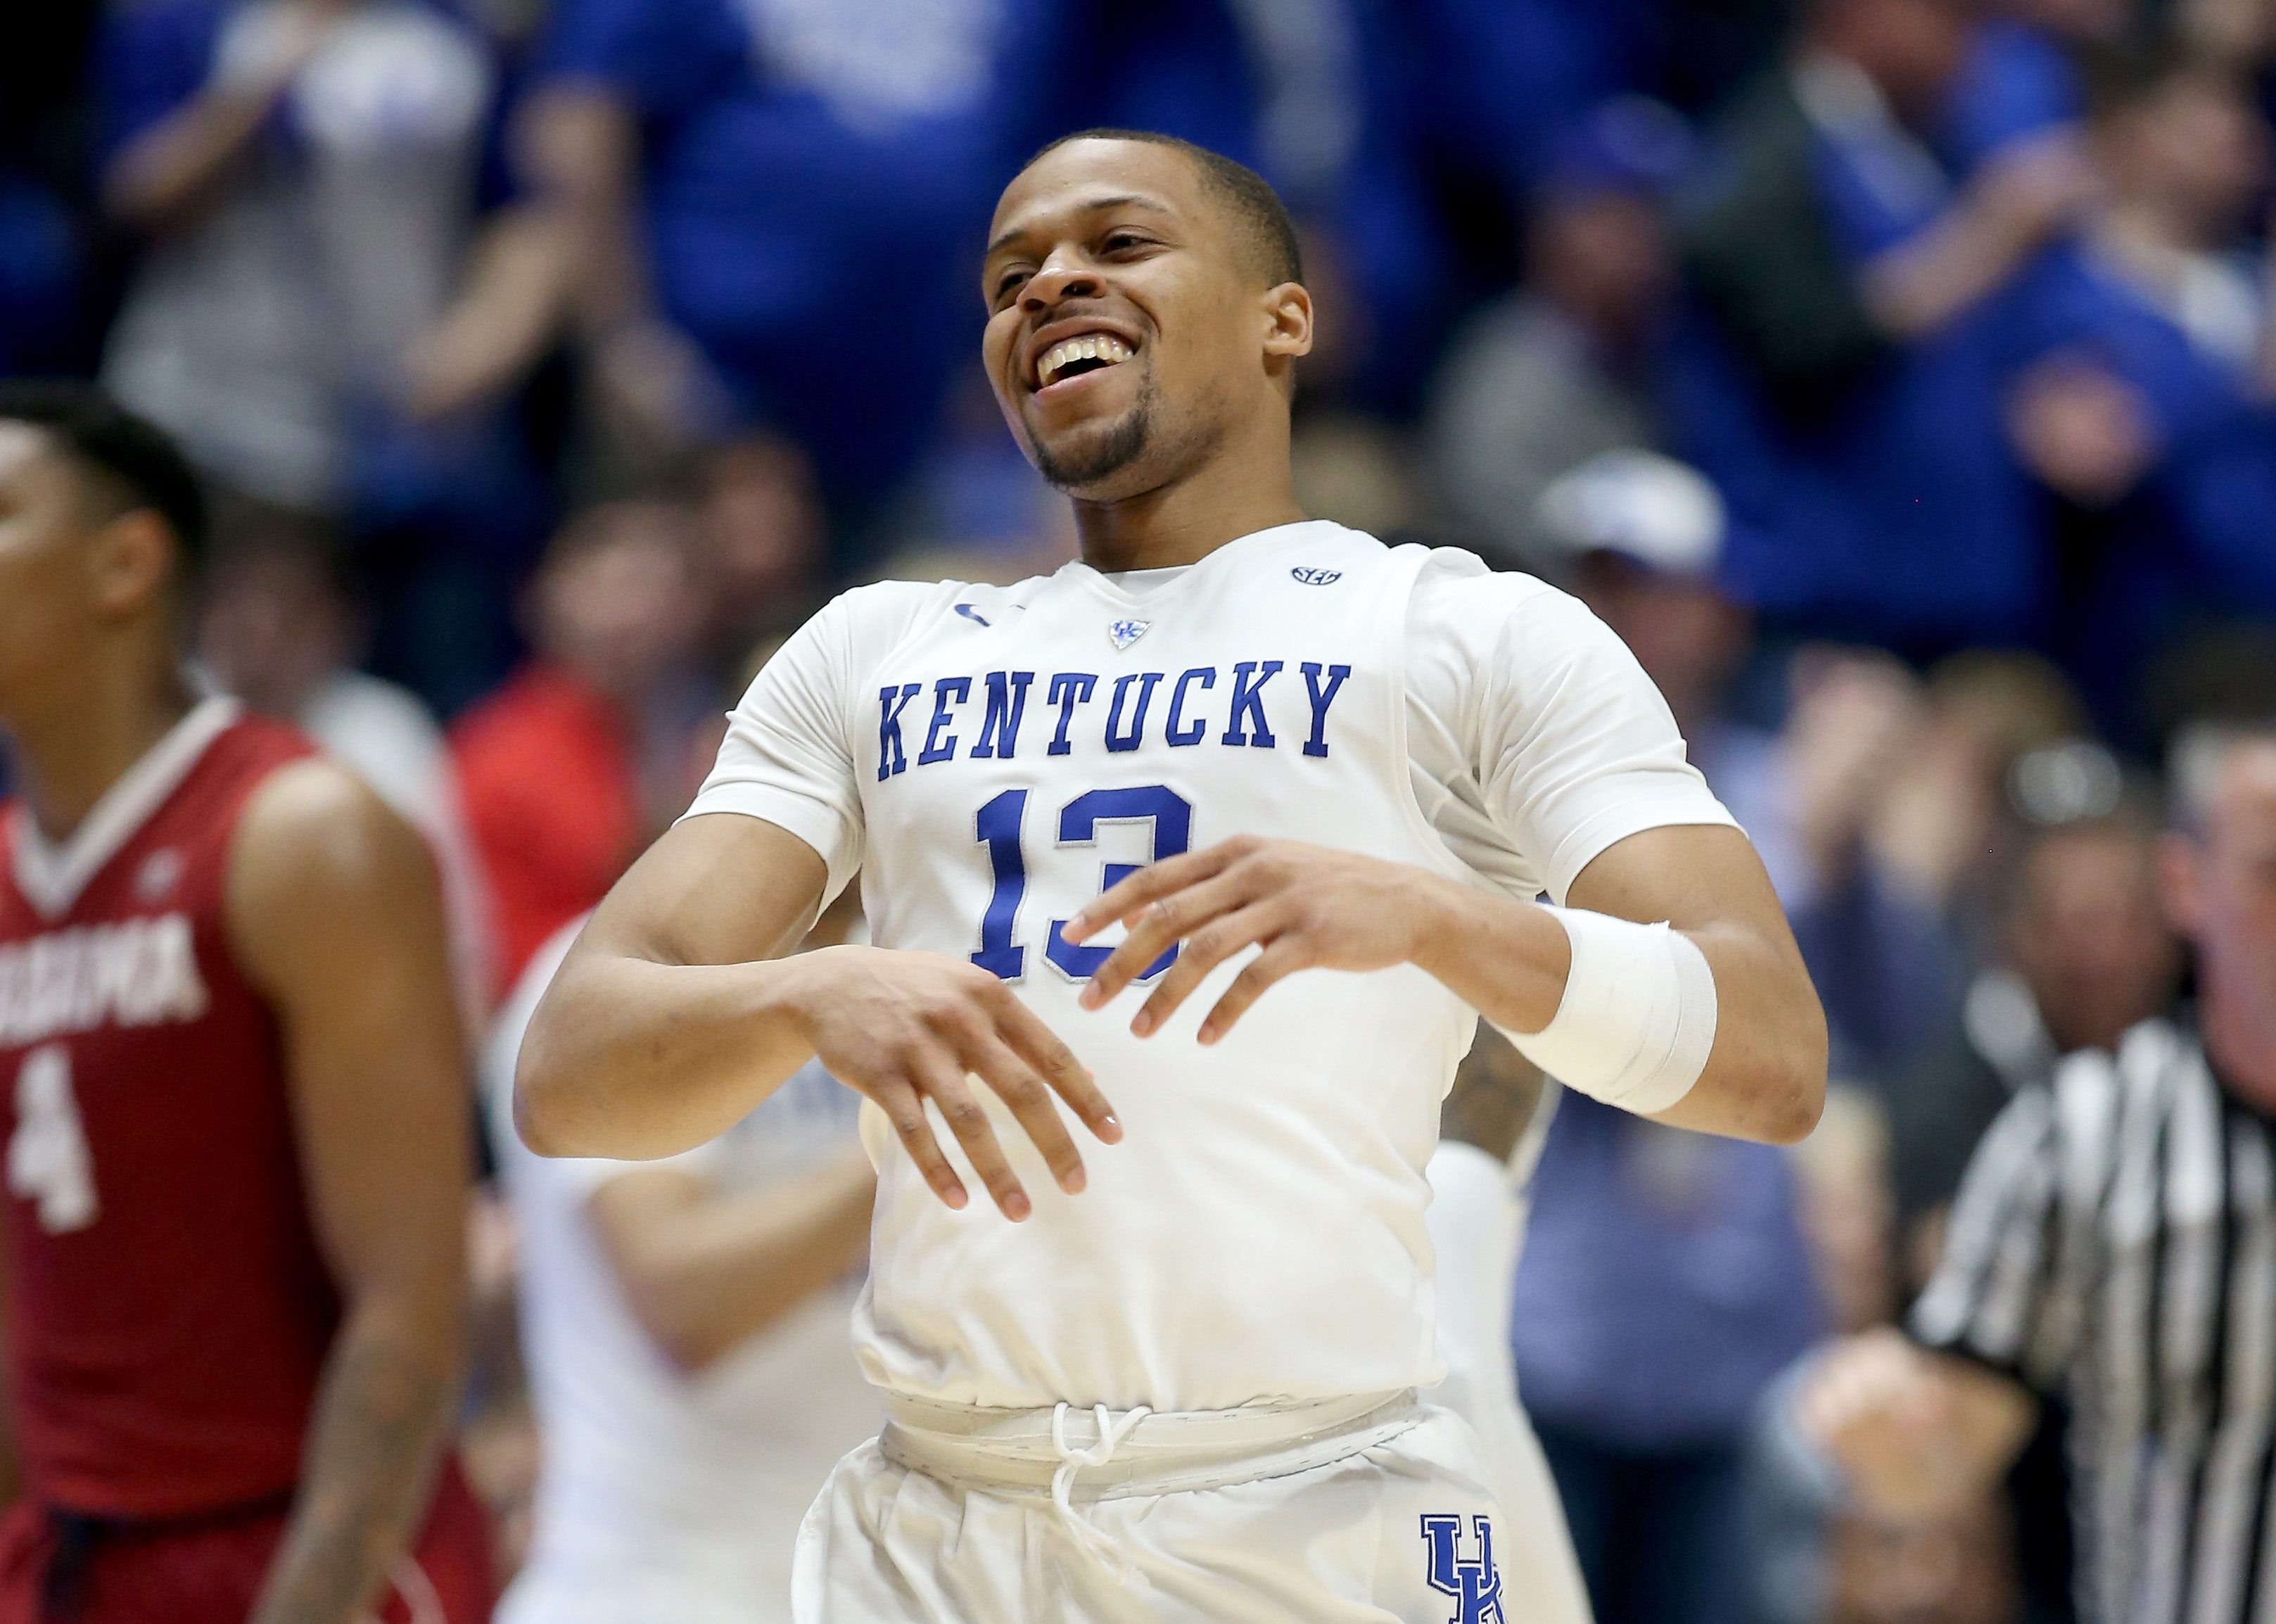 NASHVILLE, TN - MARCH 11: Isaiah Briscoe #13 of the Kentucky Wildcats celebrates in the game against the Alabama Crimson Tide during the quarterfinals of the SEC Basketball Tournament at Bridgestone Arena on March 11, 2016 in Nashville, Tennessee. (Photo by Andy Lyons/Getty Images)